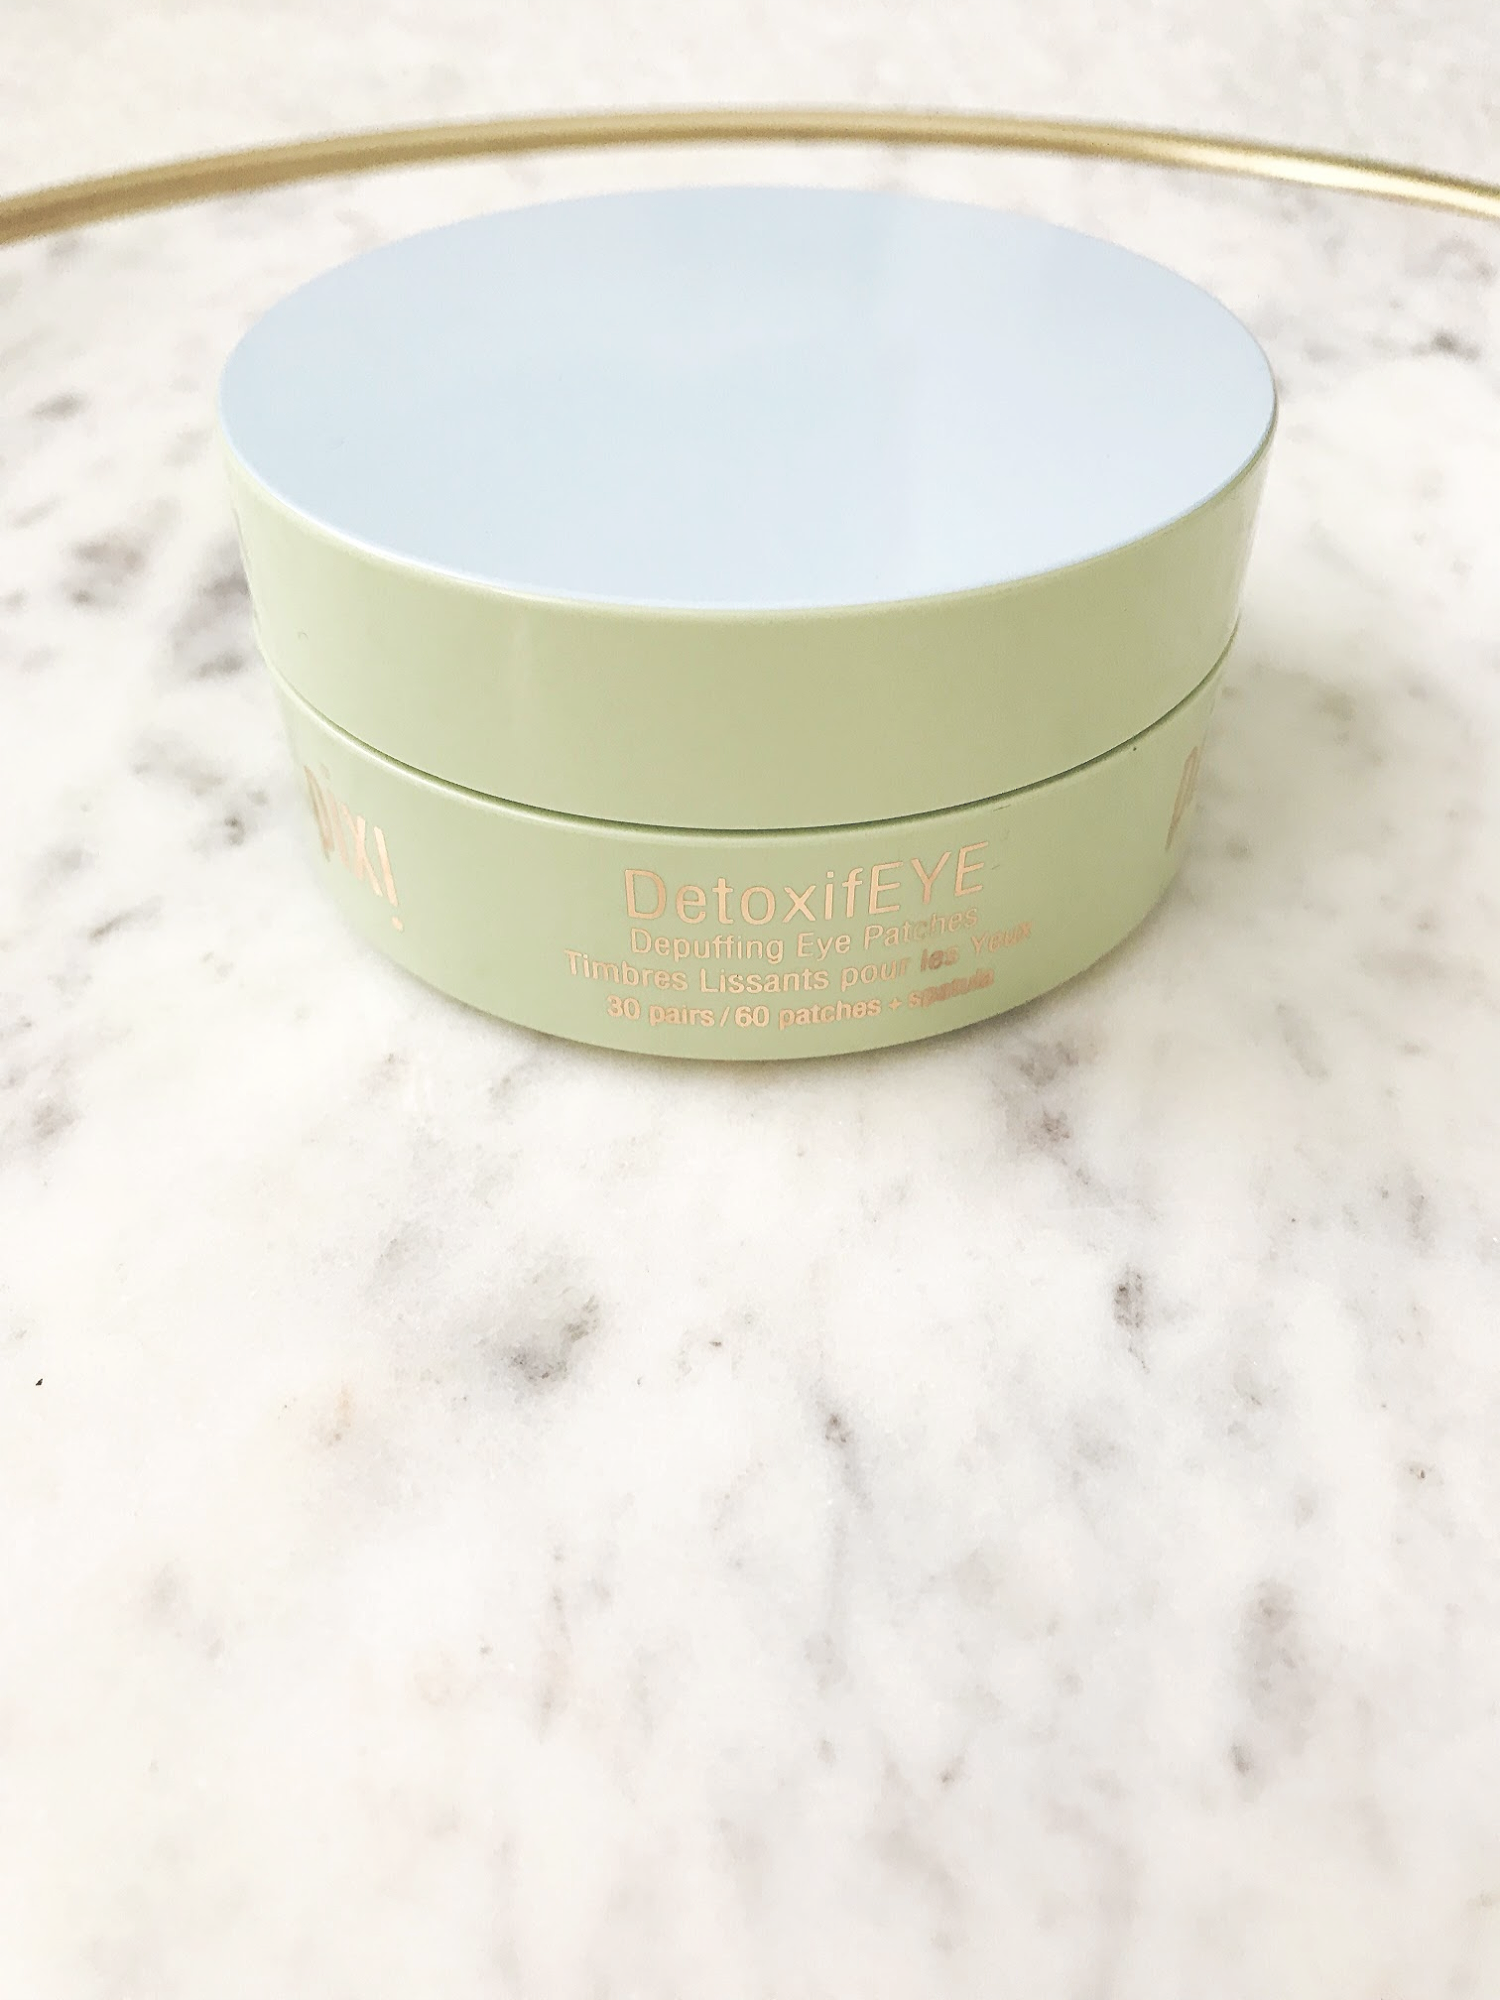 STH 6 Beauty Products I'm Currently Loving-Pixi Beauty DetoxiEye Gel Patches